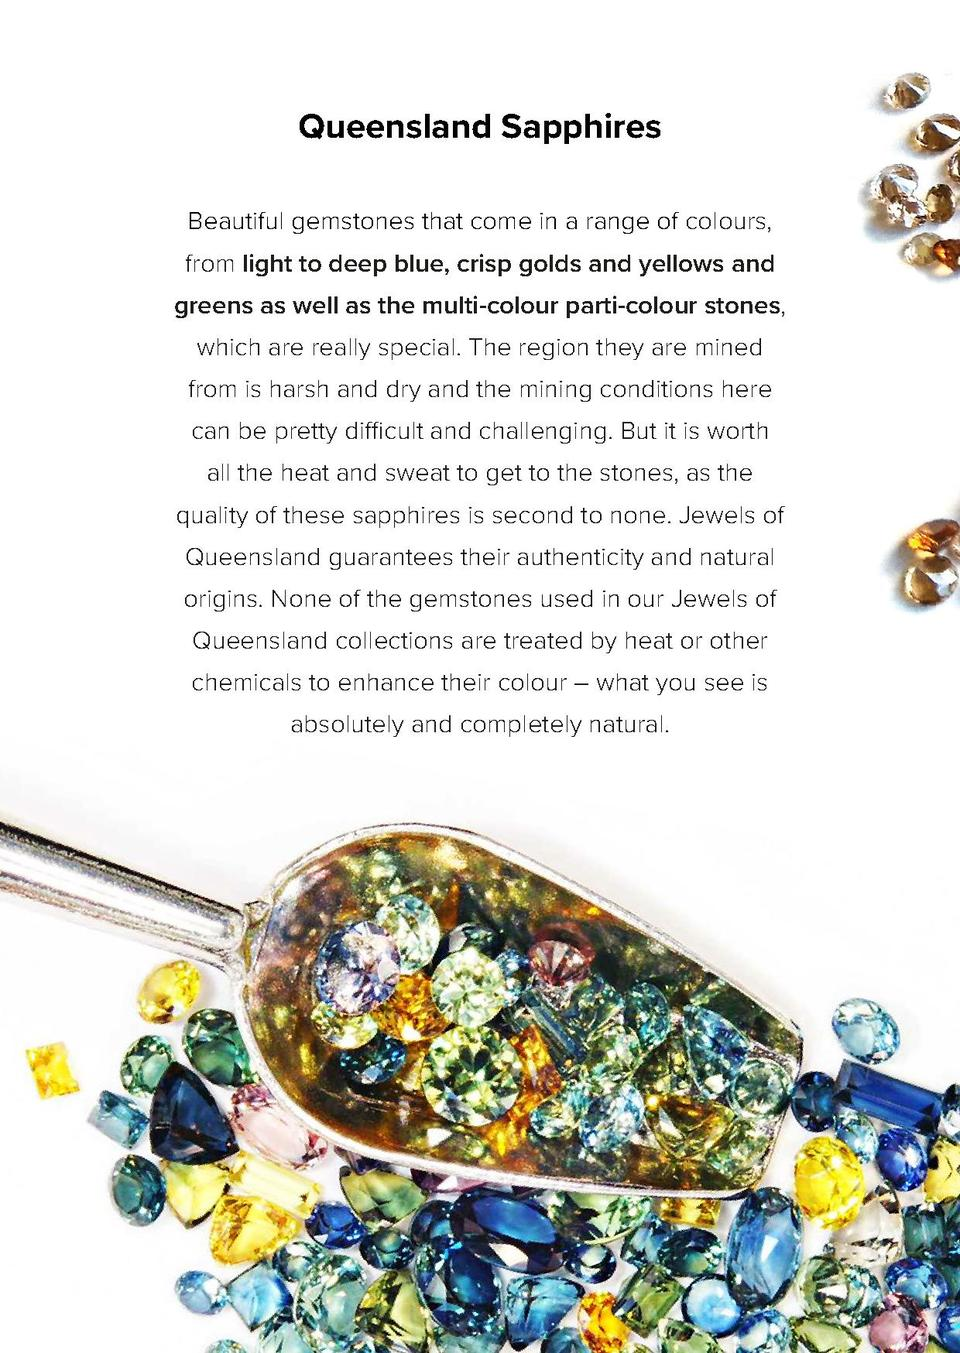 Queensland Sapphires Beautiful gemstones that come in a range of colours, from light to deep blue, crisp golds and yellows...